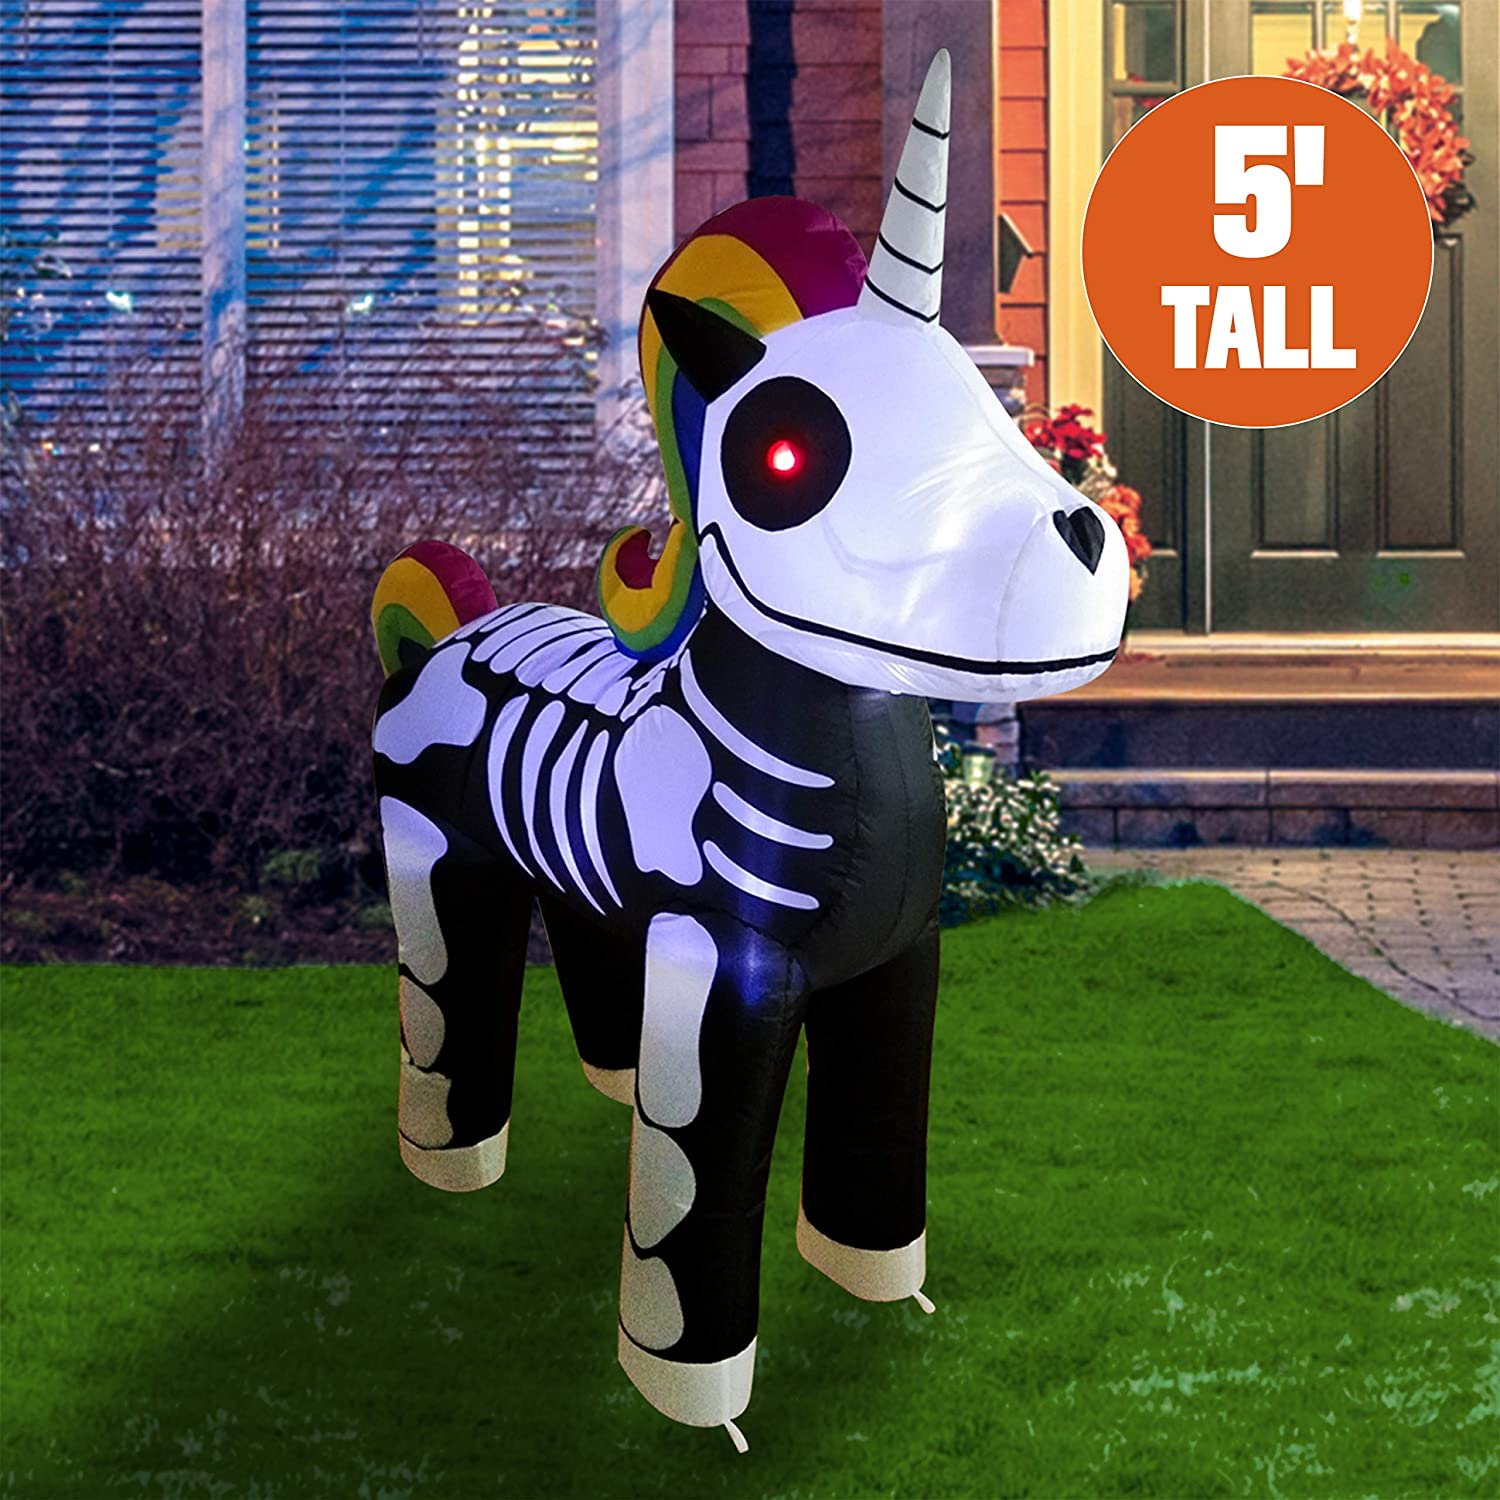 Skeleton Unicorn Outdoor Inflatables